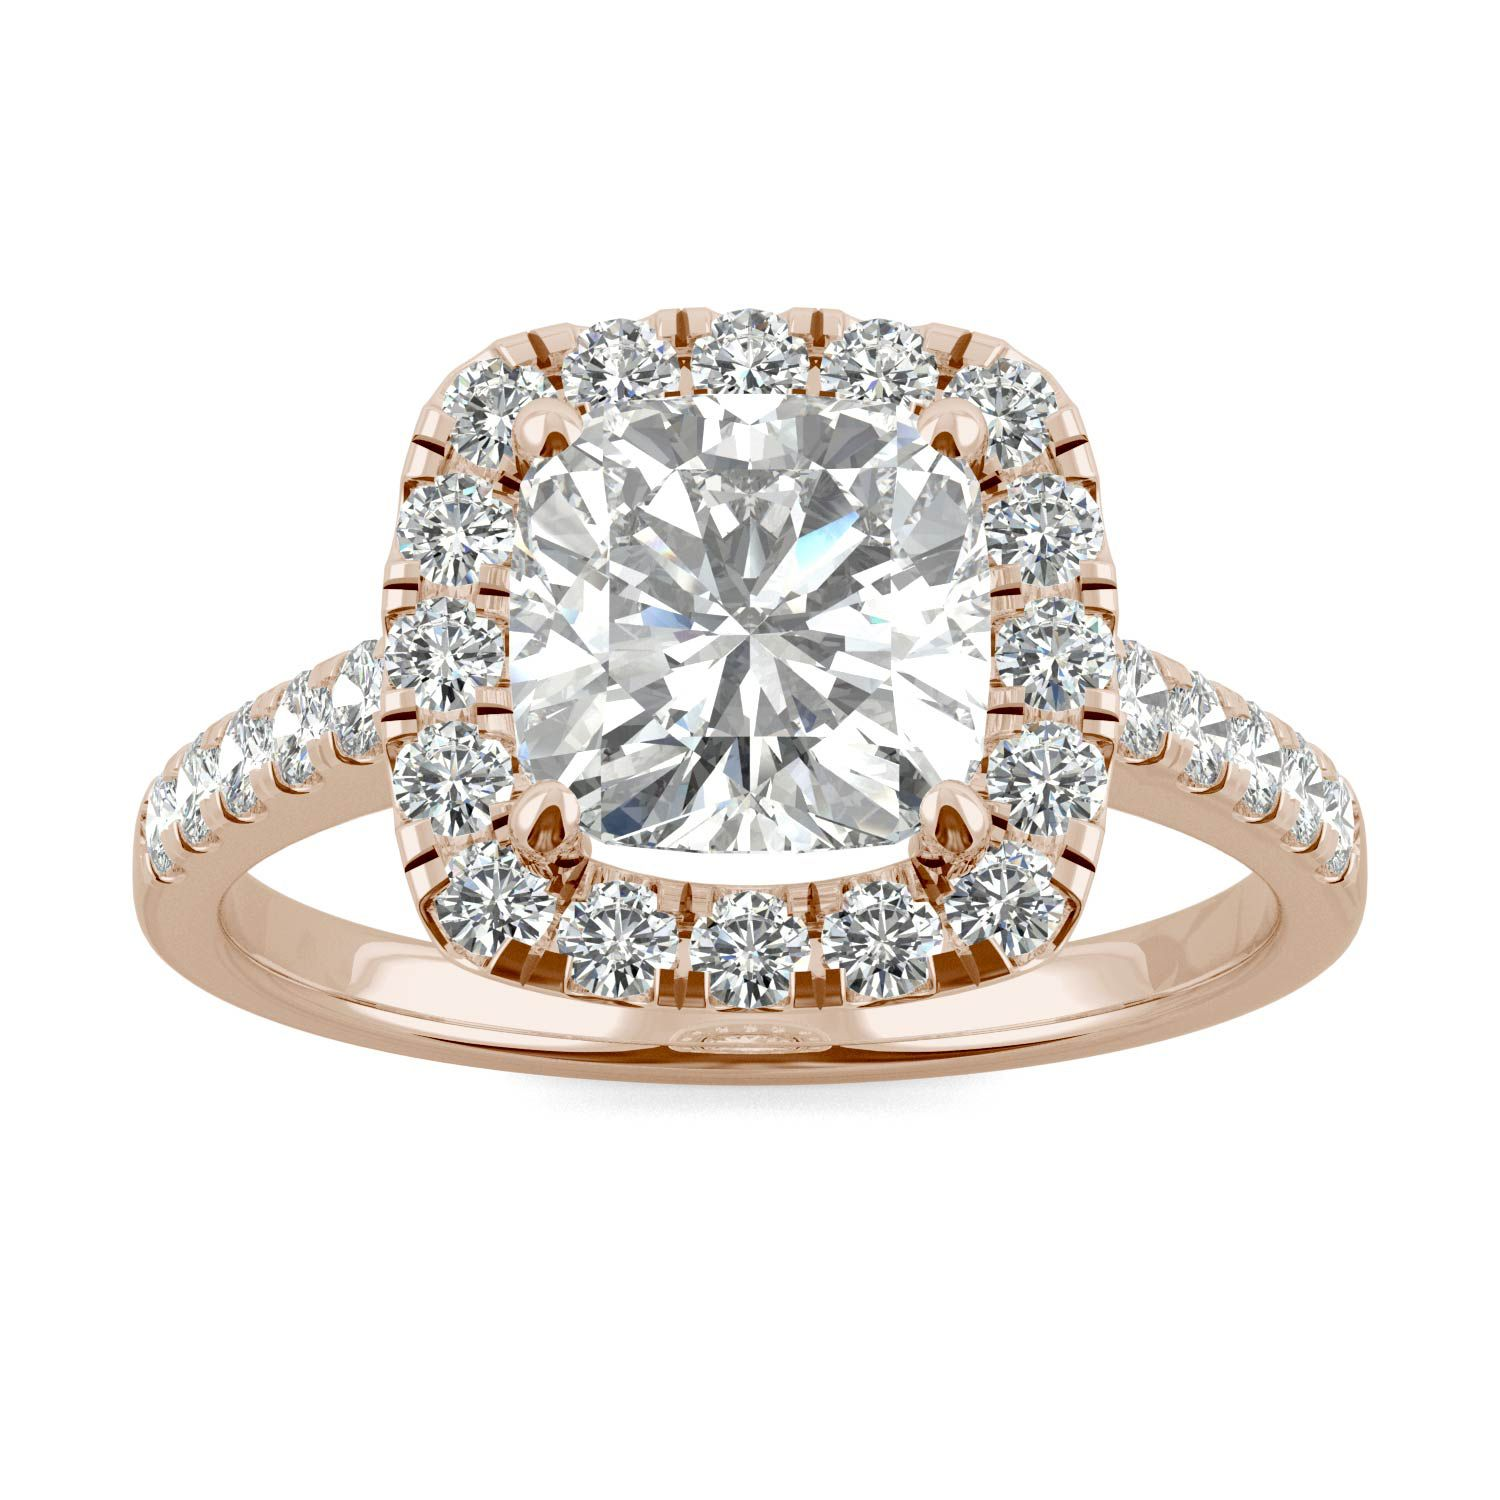 Halo Cushion Colorless Moissanite Engagement Ring 2.65CTW in 14K Rose Gold #cushionengagementring